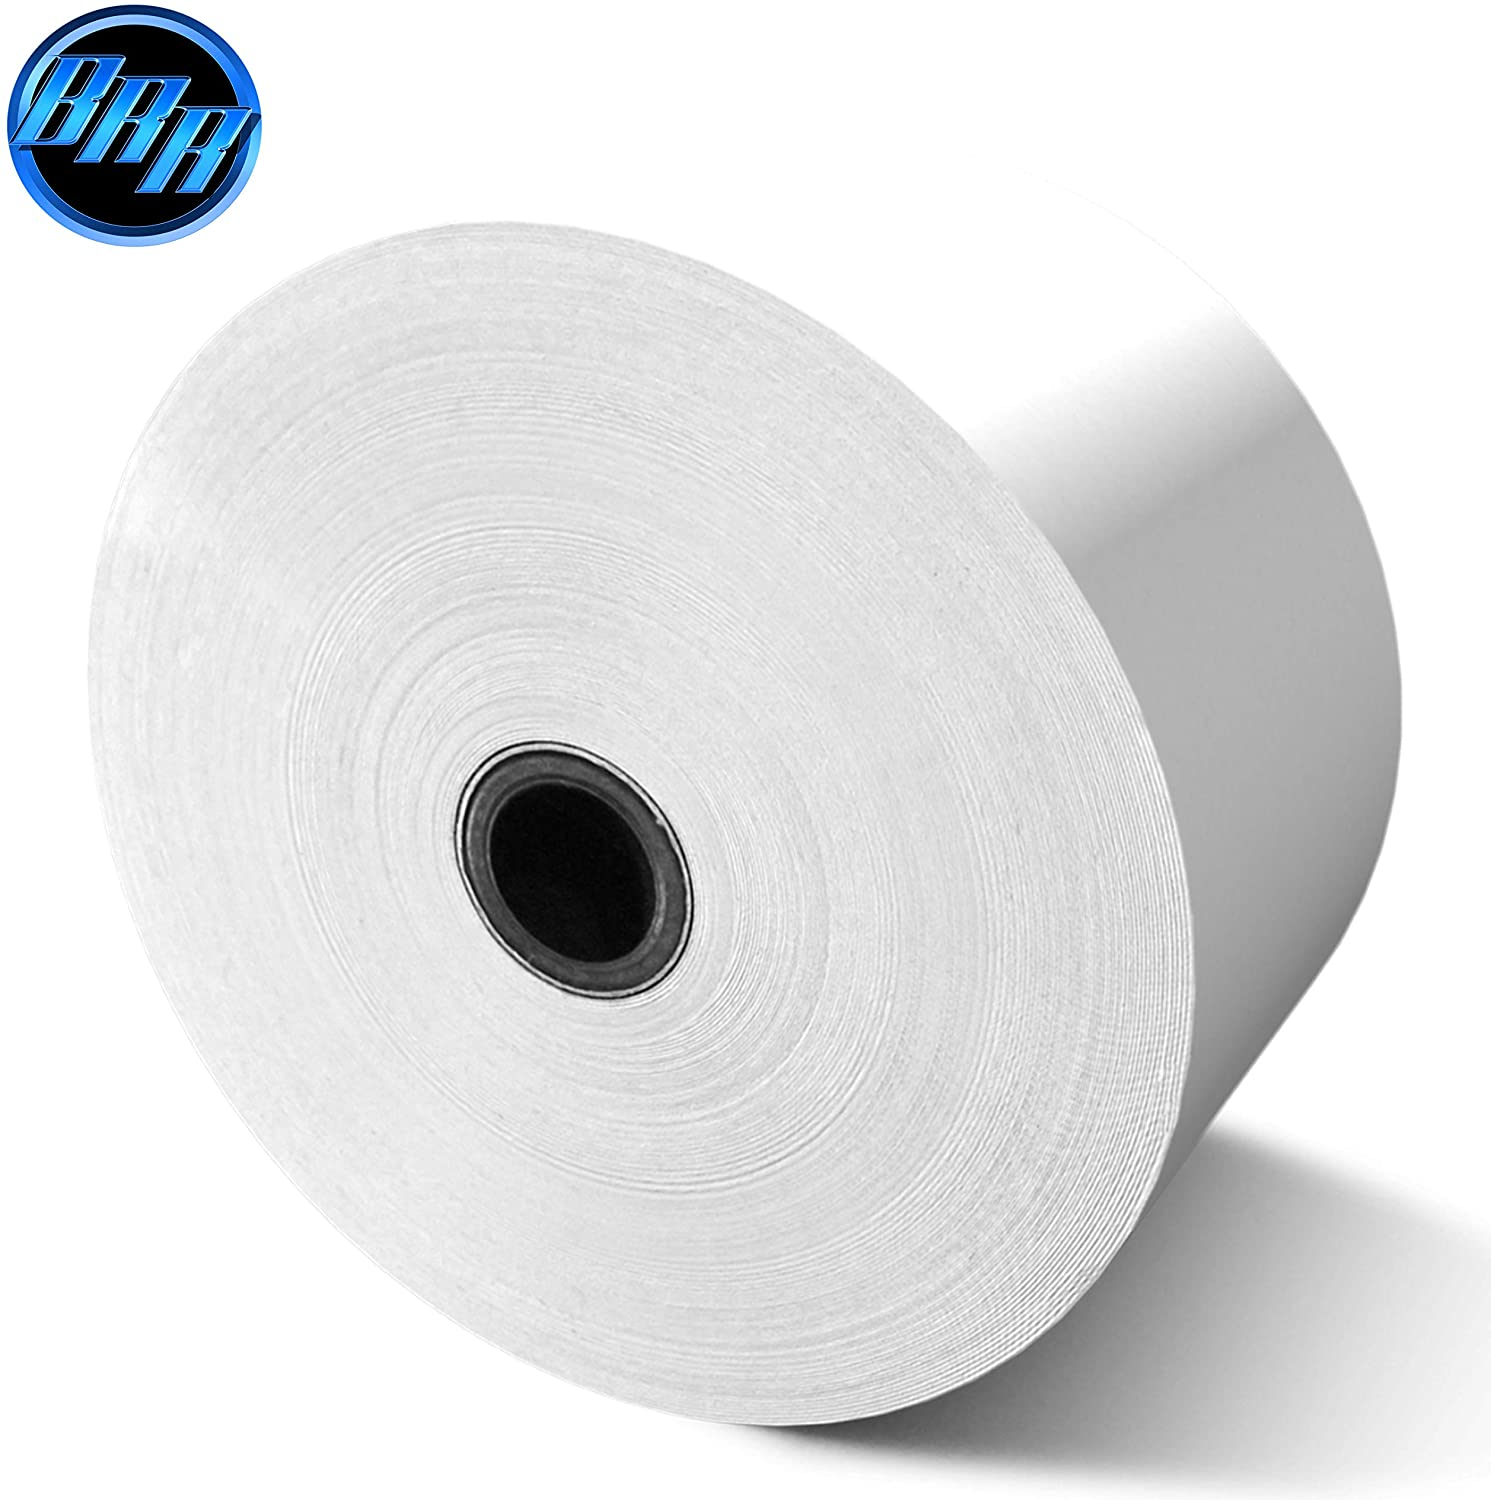 "(80 GSM Paper Thickness Core) 2-1/4"" x 675' 8 Rolls Thermal Atm Receipt Paper Rolls"